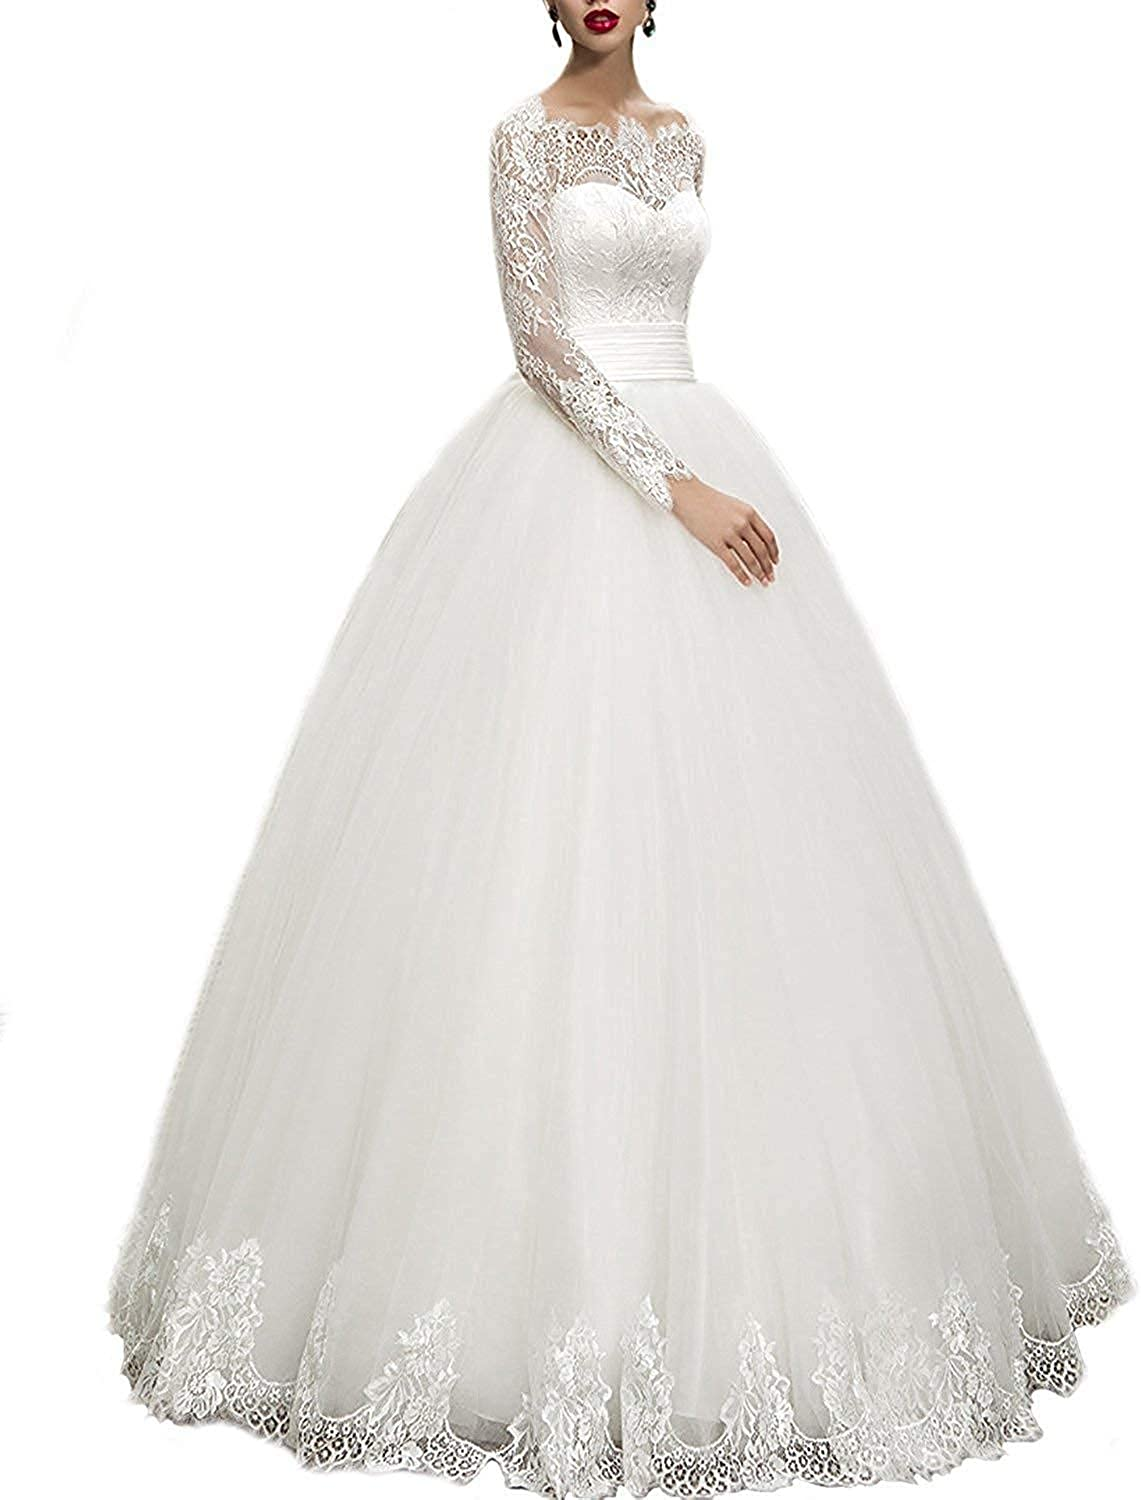 RYANTH Women's Long Lace Sleeves Wedding Dress for Bride 2019 Sweetheart Bridal Ball Gown RWD54